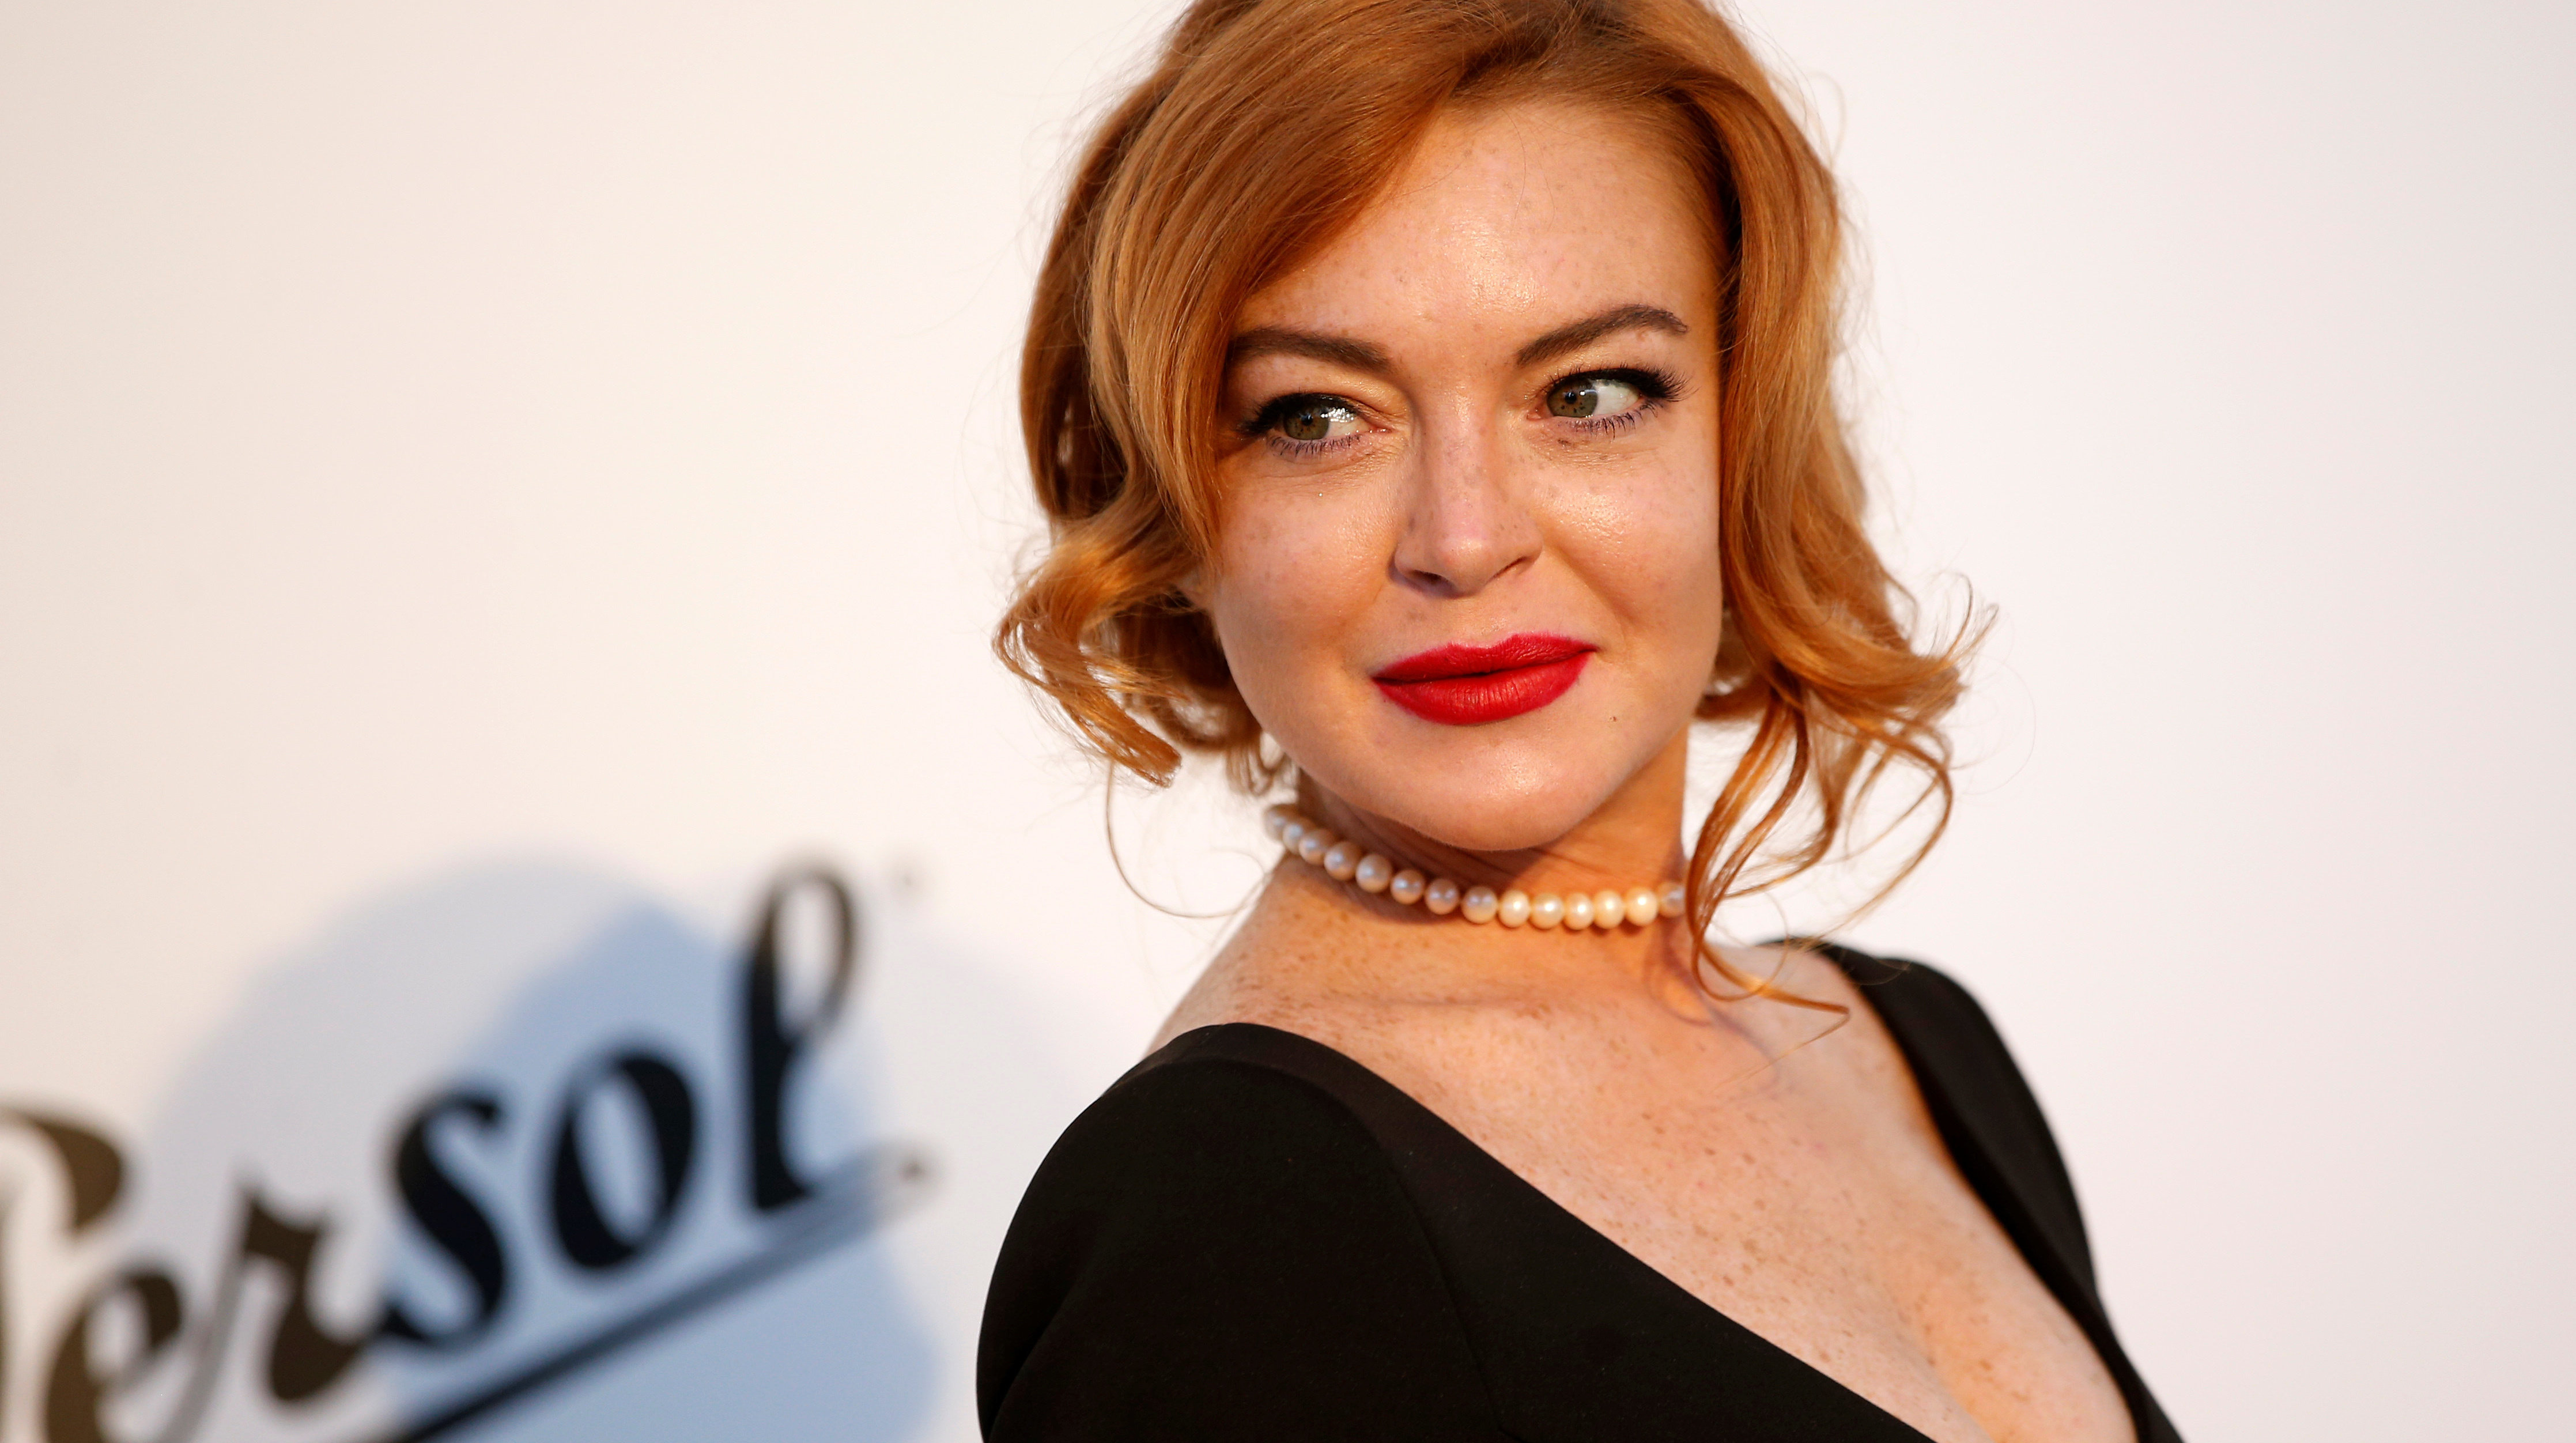 Lindsay Lohan Says Past Relationships With Women Were Part Of 'Living In L.A.'